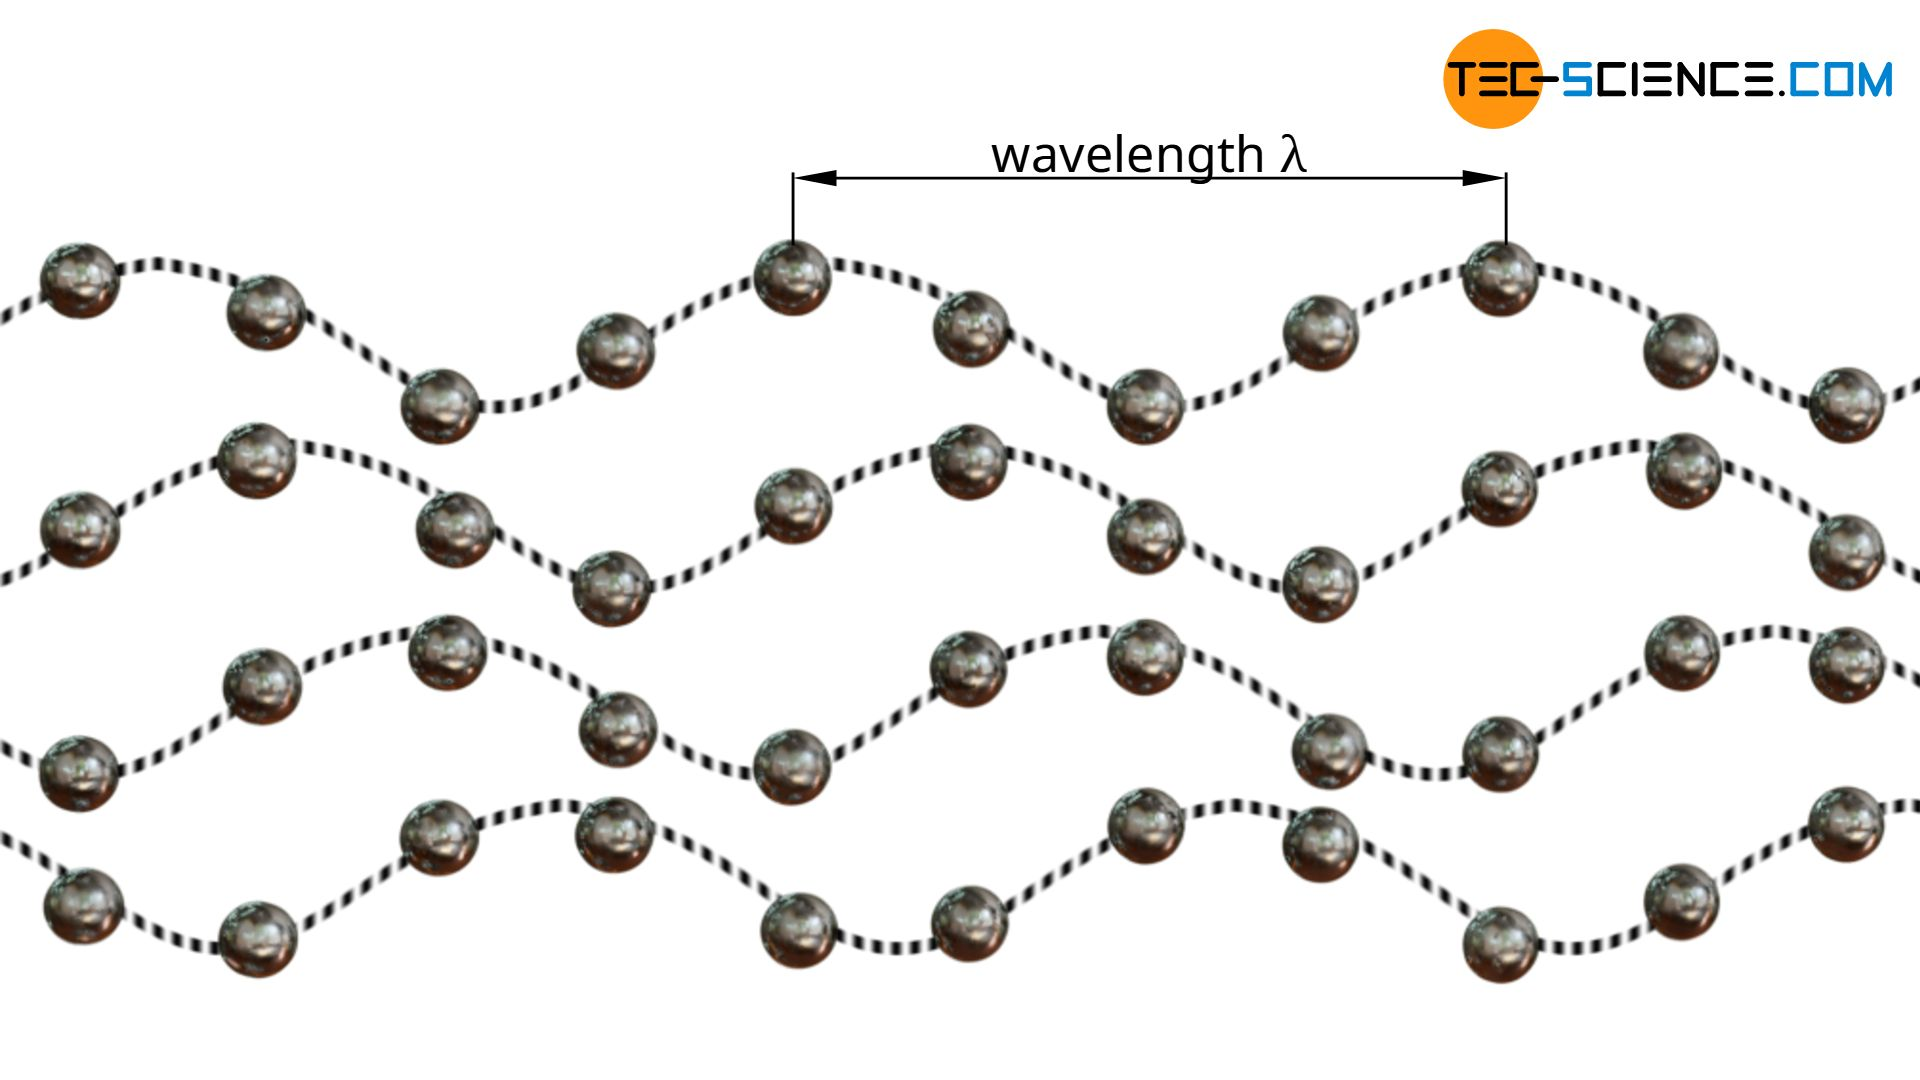 Phonons as a way of describing the lattice vibrations in solids